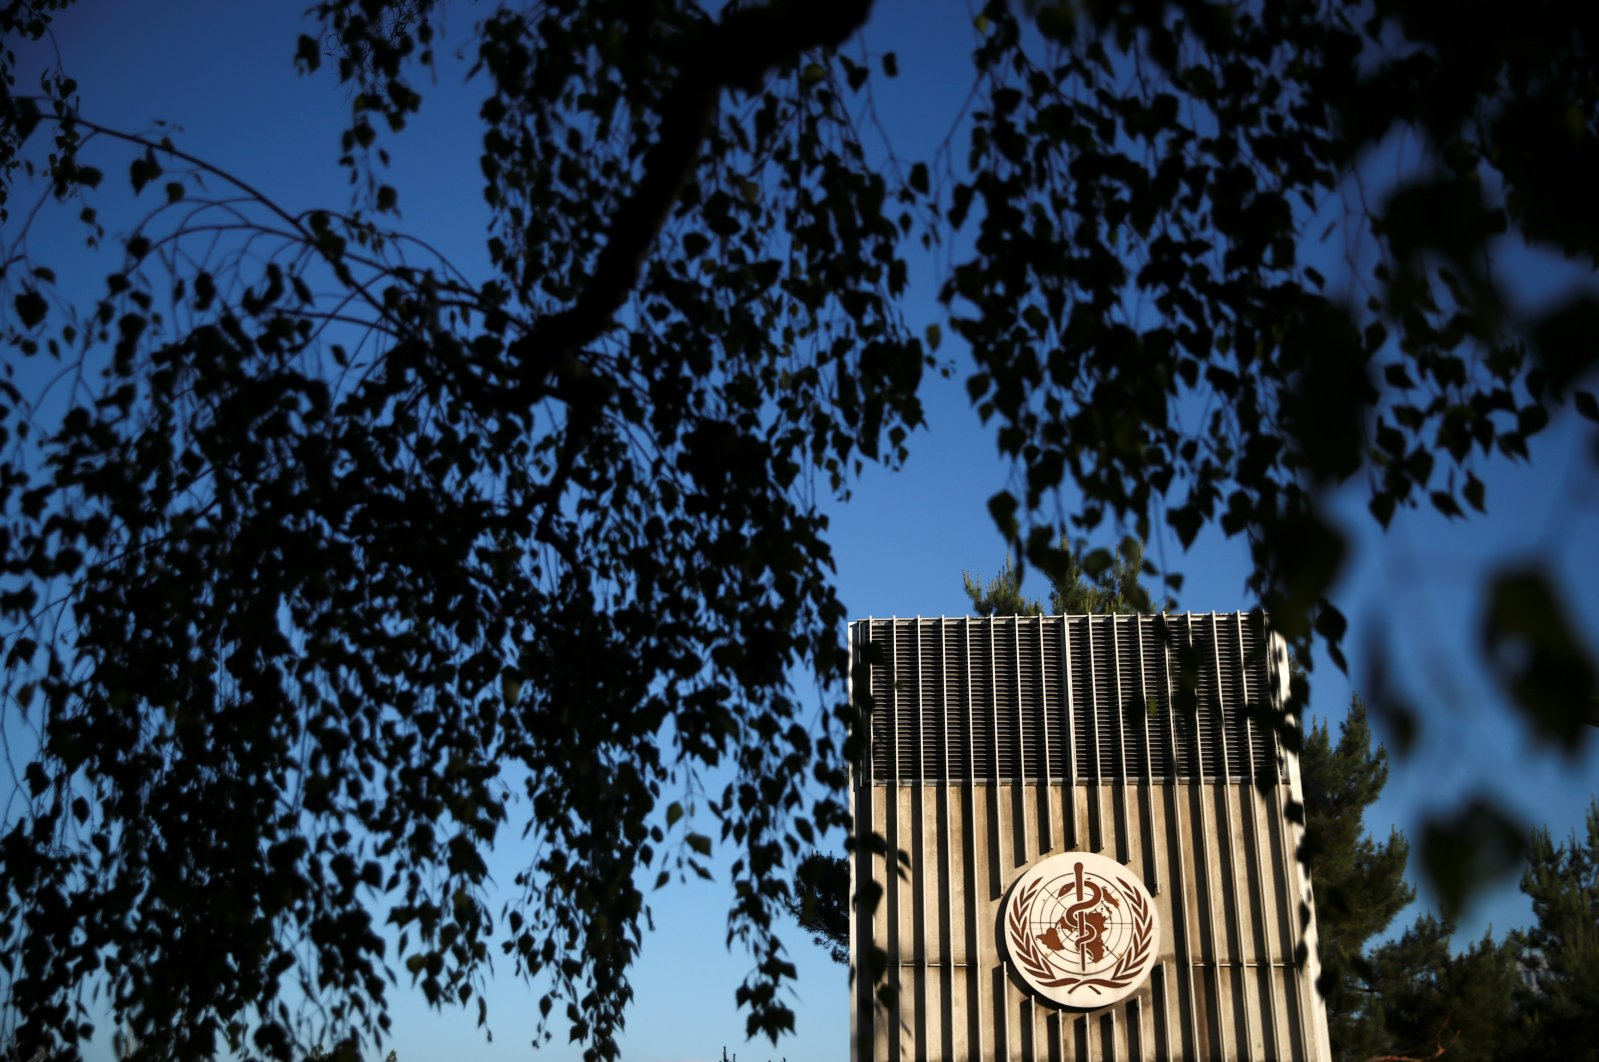 The headquarters of the World Health Organization (WHO) are pictured during the World Health Assembly (WHA) following the outbreak of the coronavirus disease (COVID-19) in Geneva, Switzerland, May 18, 2020. (Reuters Photo)